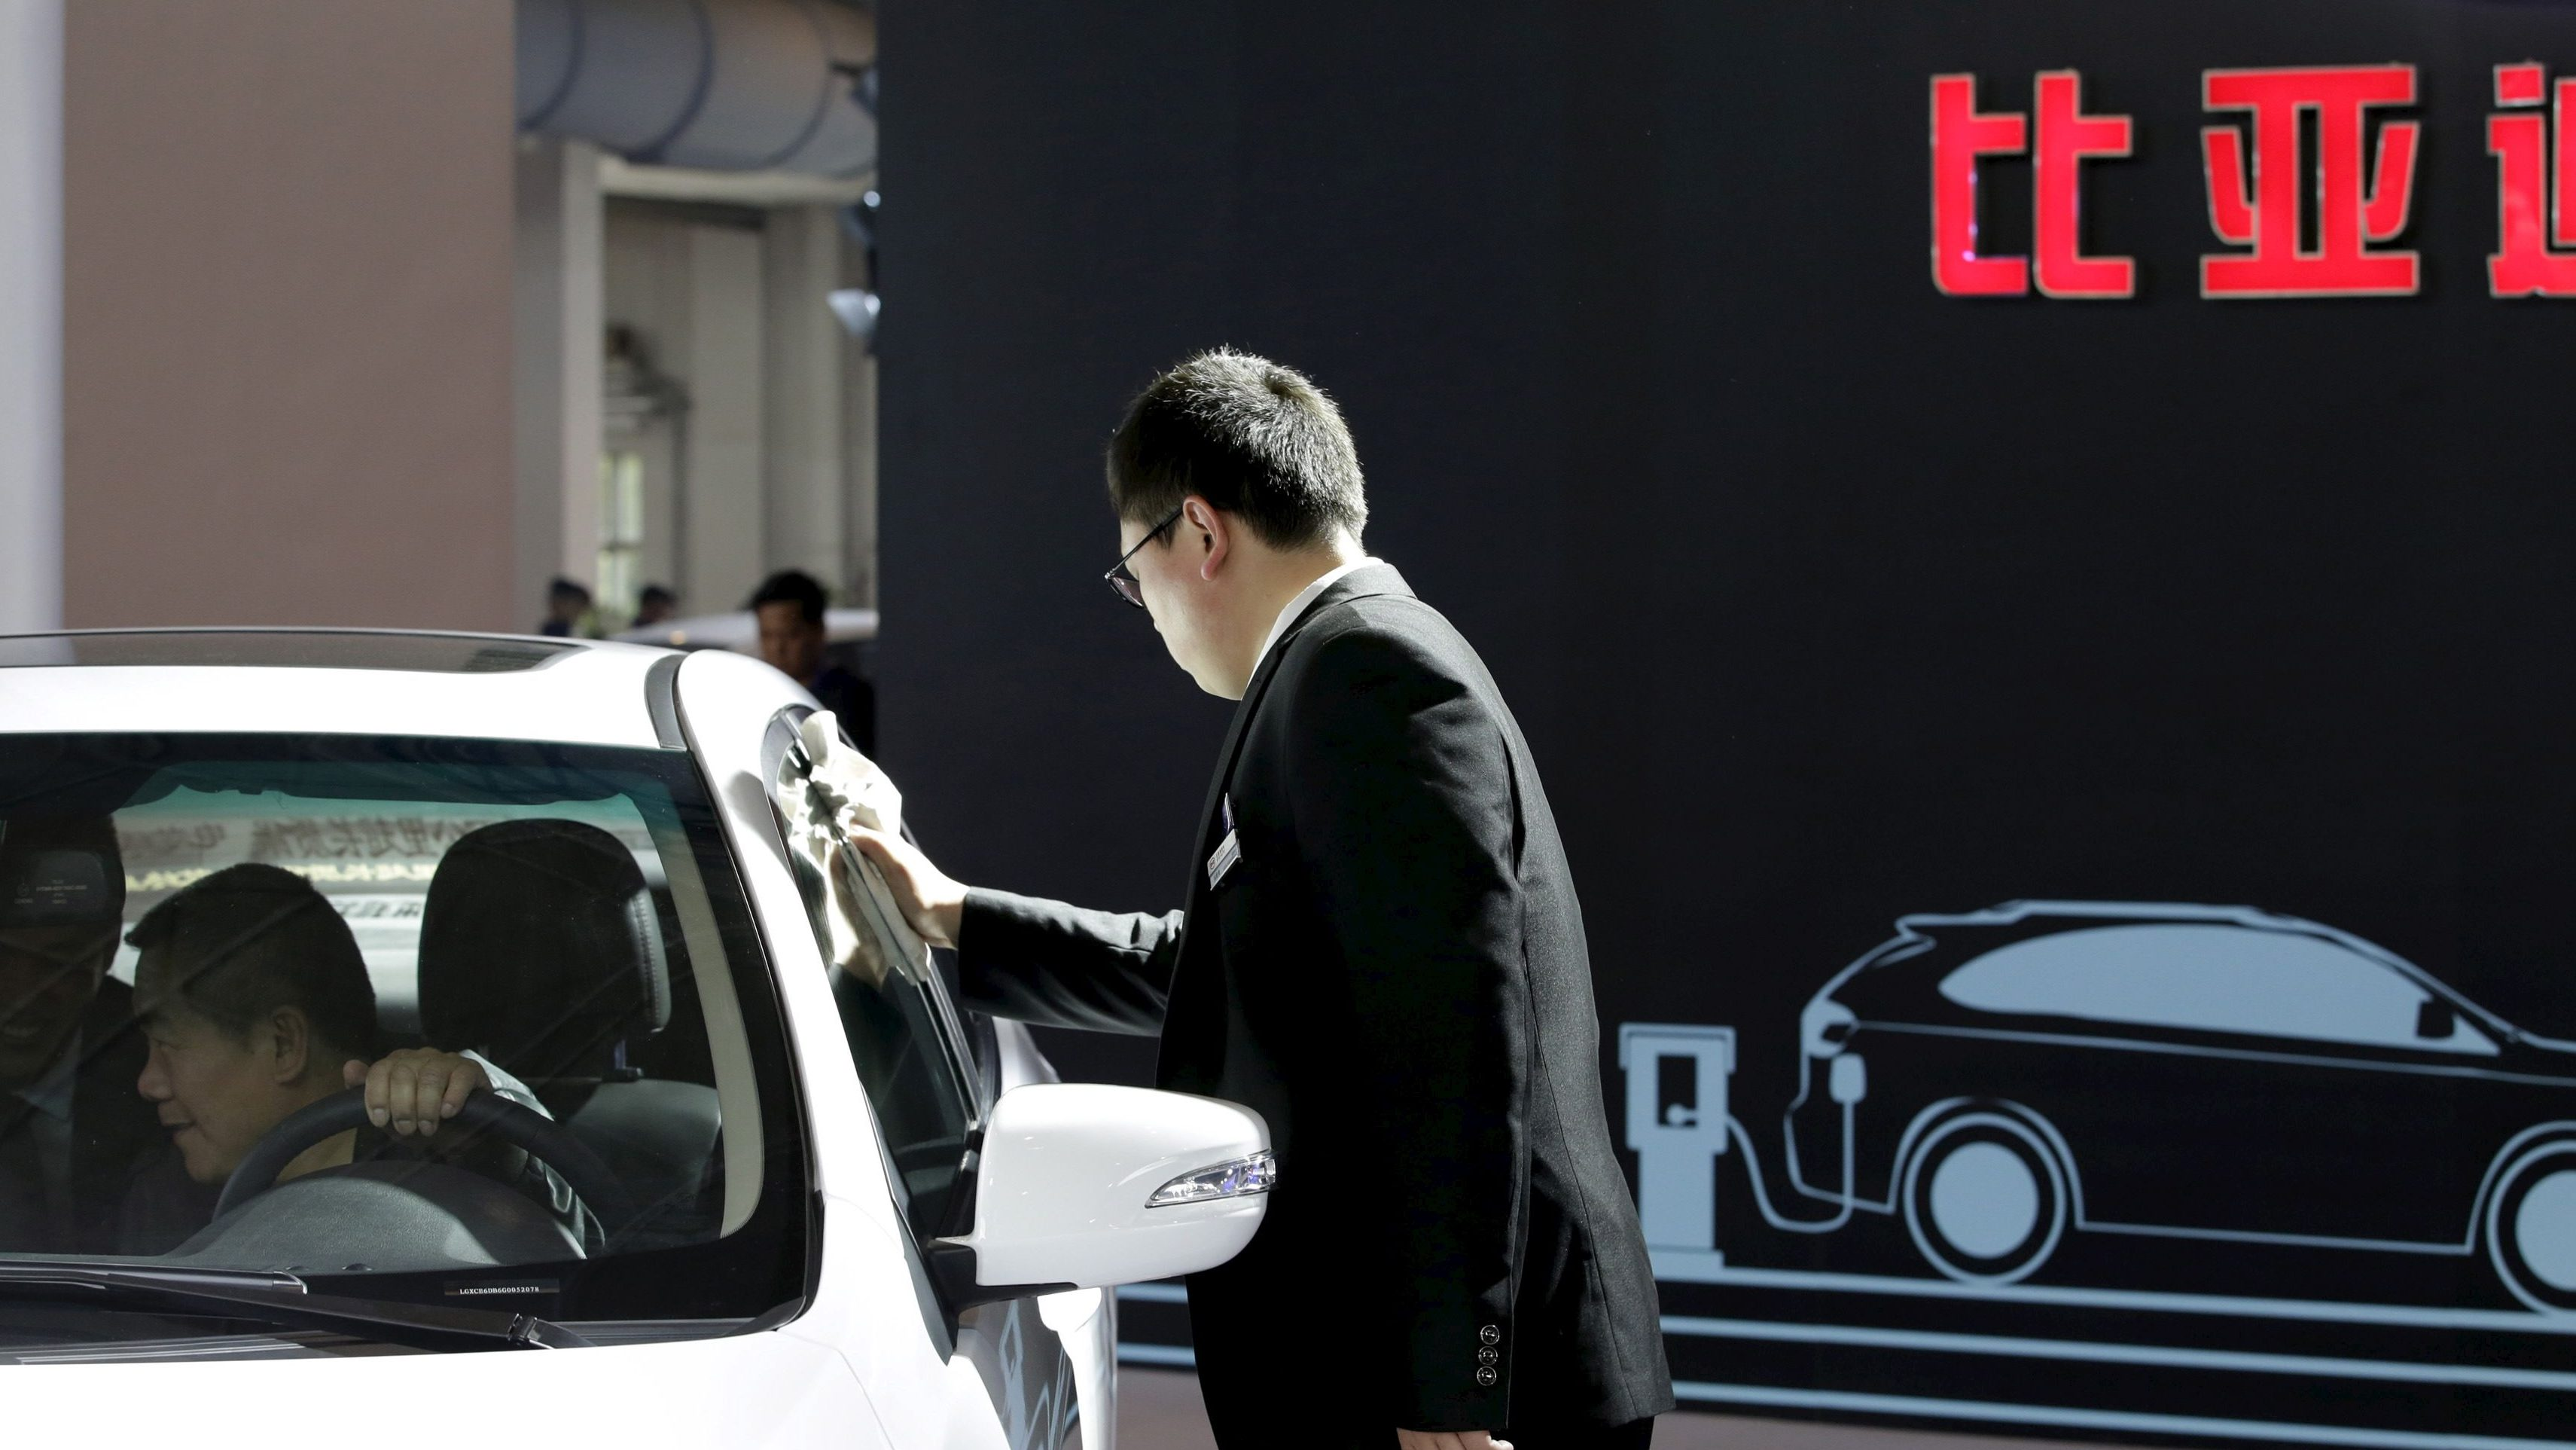 A staff member cleans a BYD electric car during the Auto China 2016 in Beijing, China, April 25, 2016.